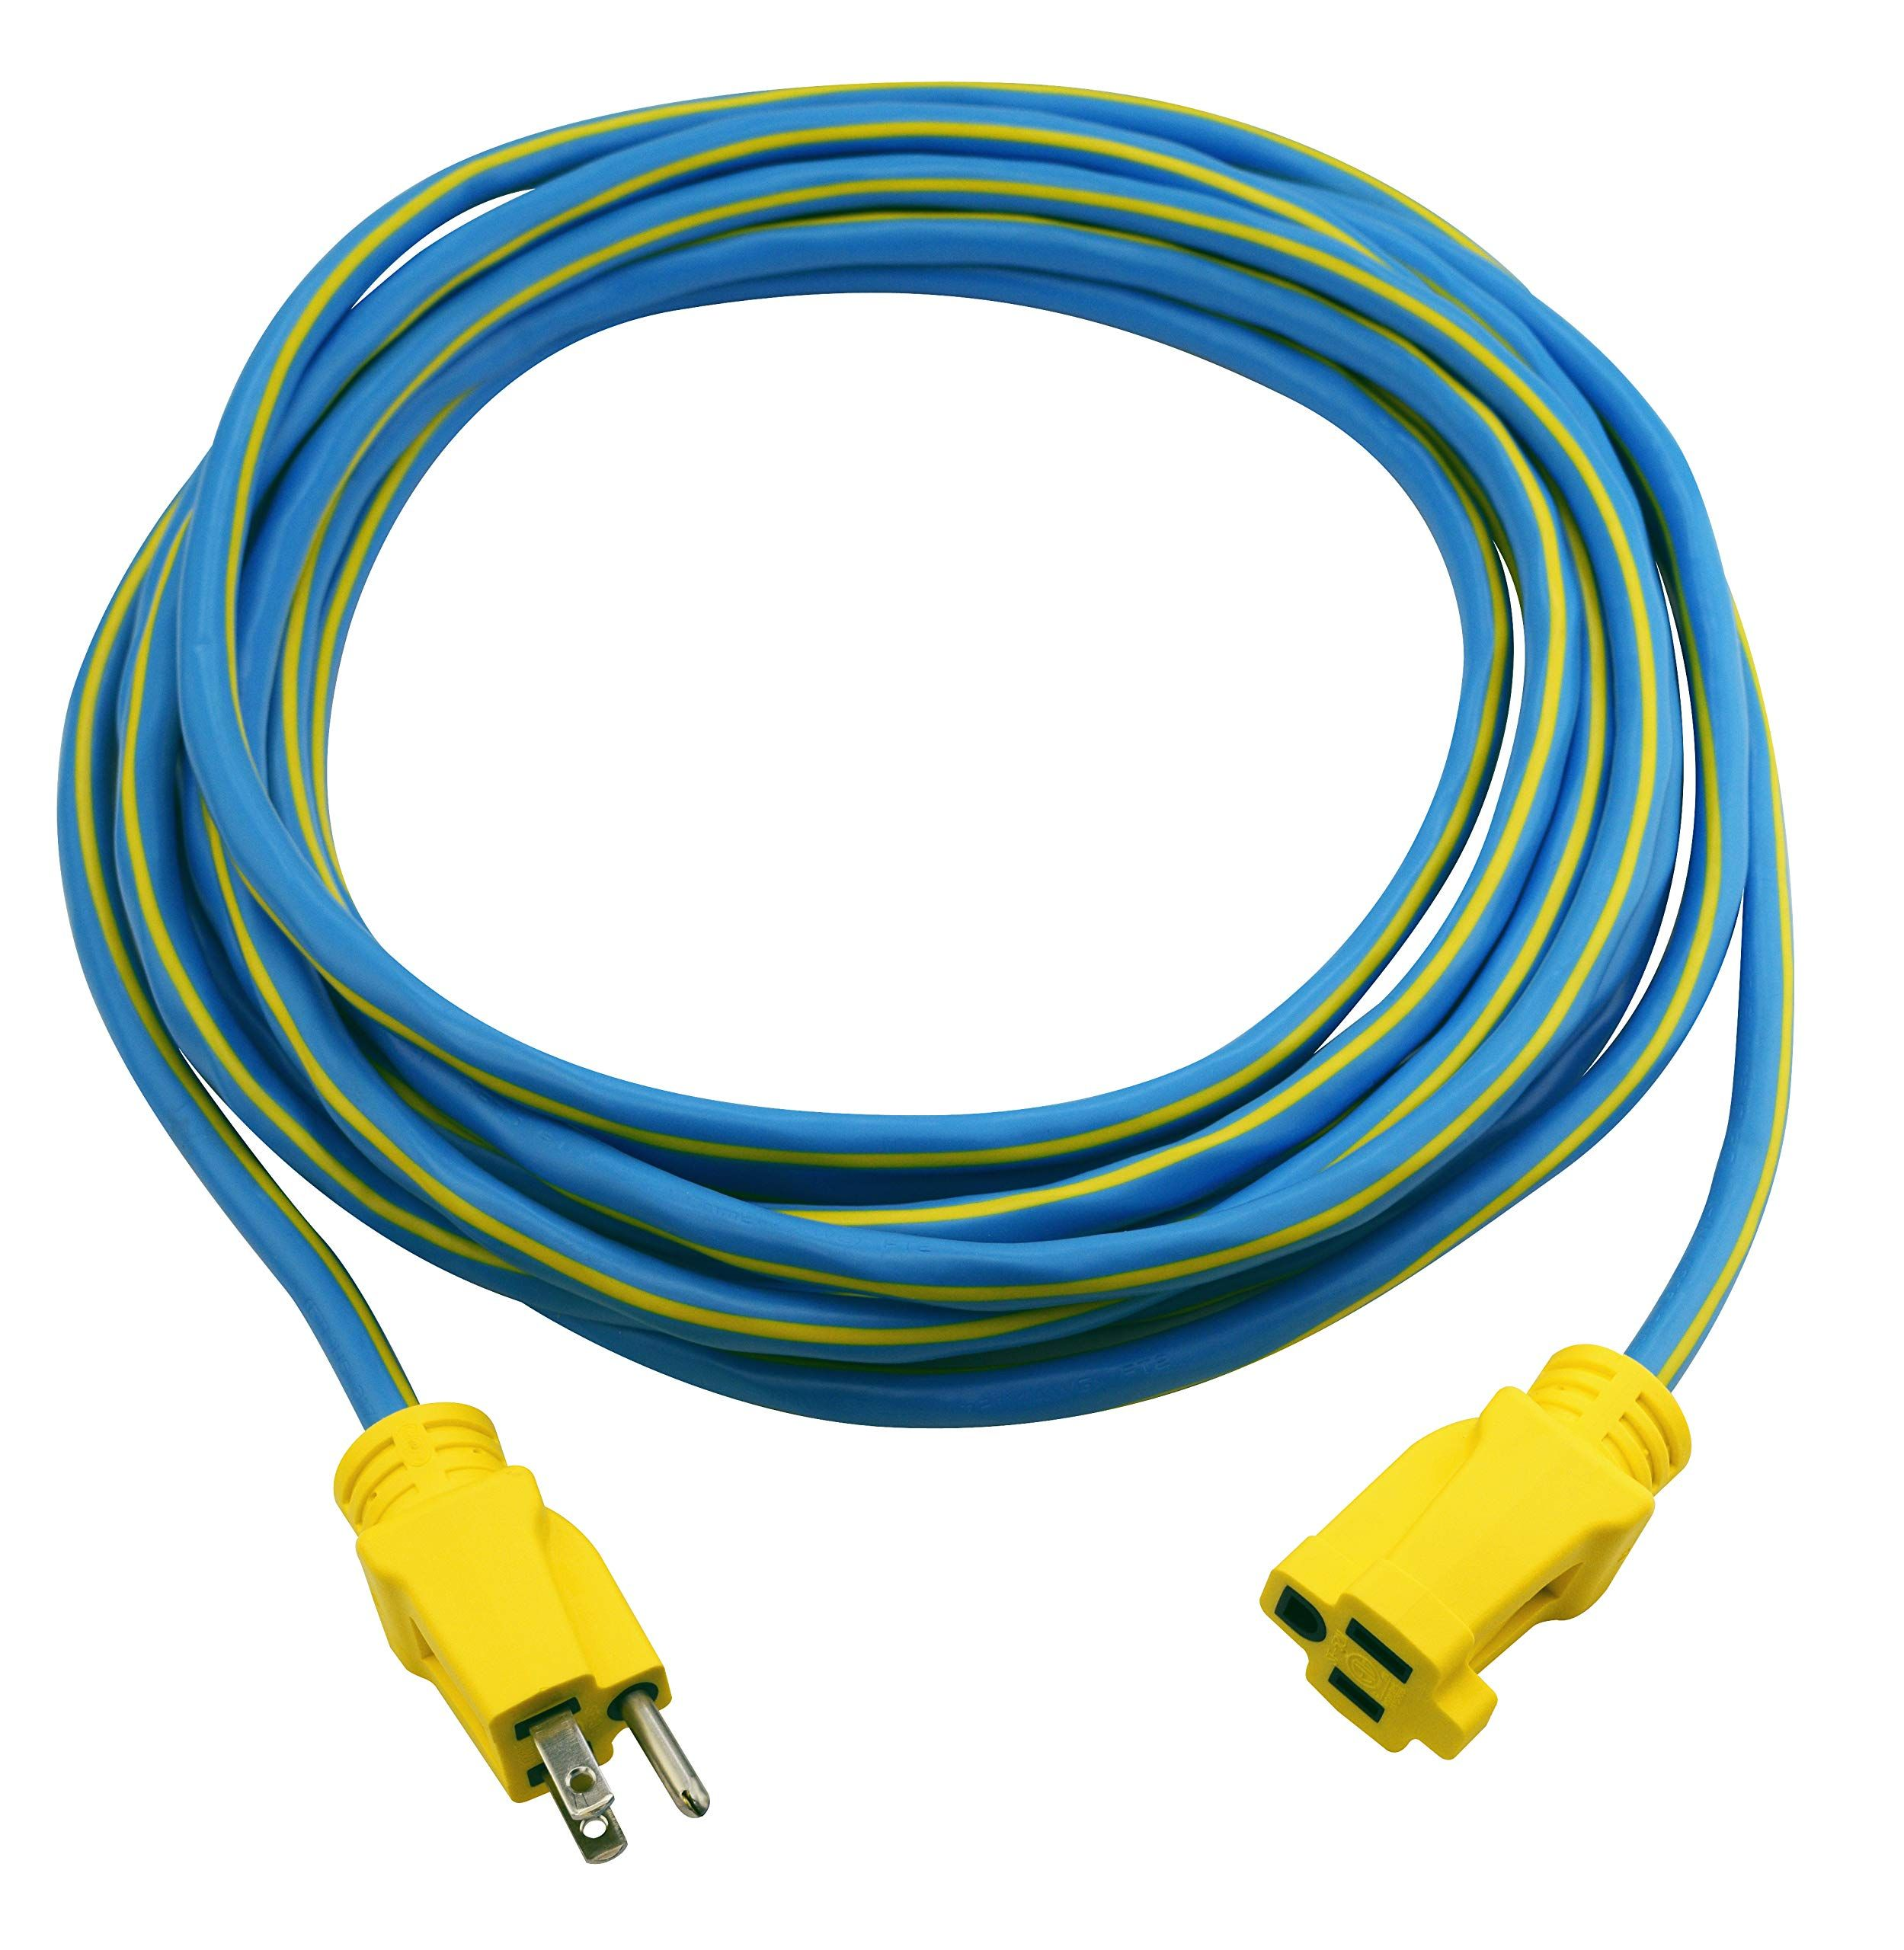 Prime Wire And Cable Kc506725 25 Foot 14 3 Sjtw Kaleidoscope Heavy Duty Outdoor Extension Cord Blue And Yello In 2020 Outdoor Extension Cord Extension Cord Heavy Duty